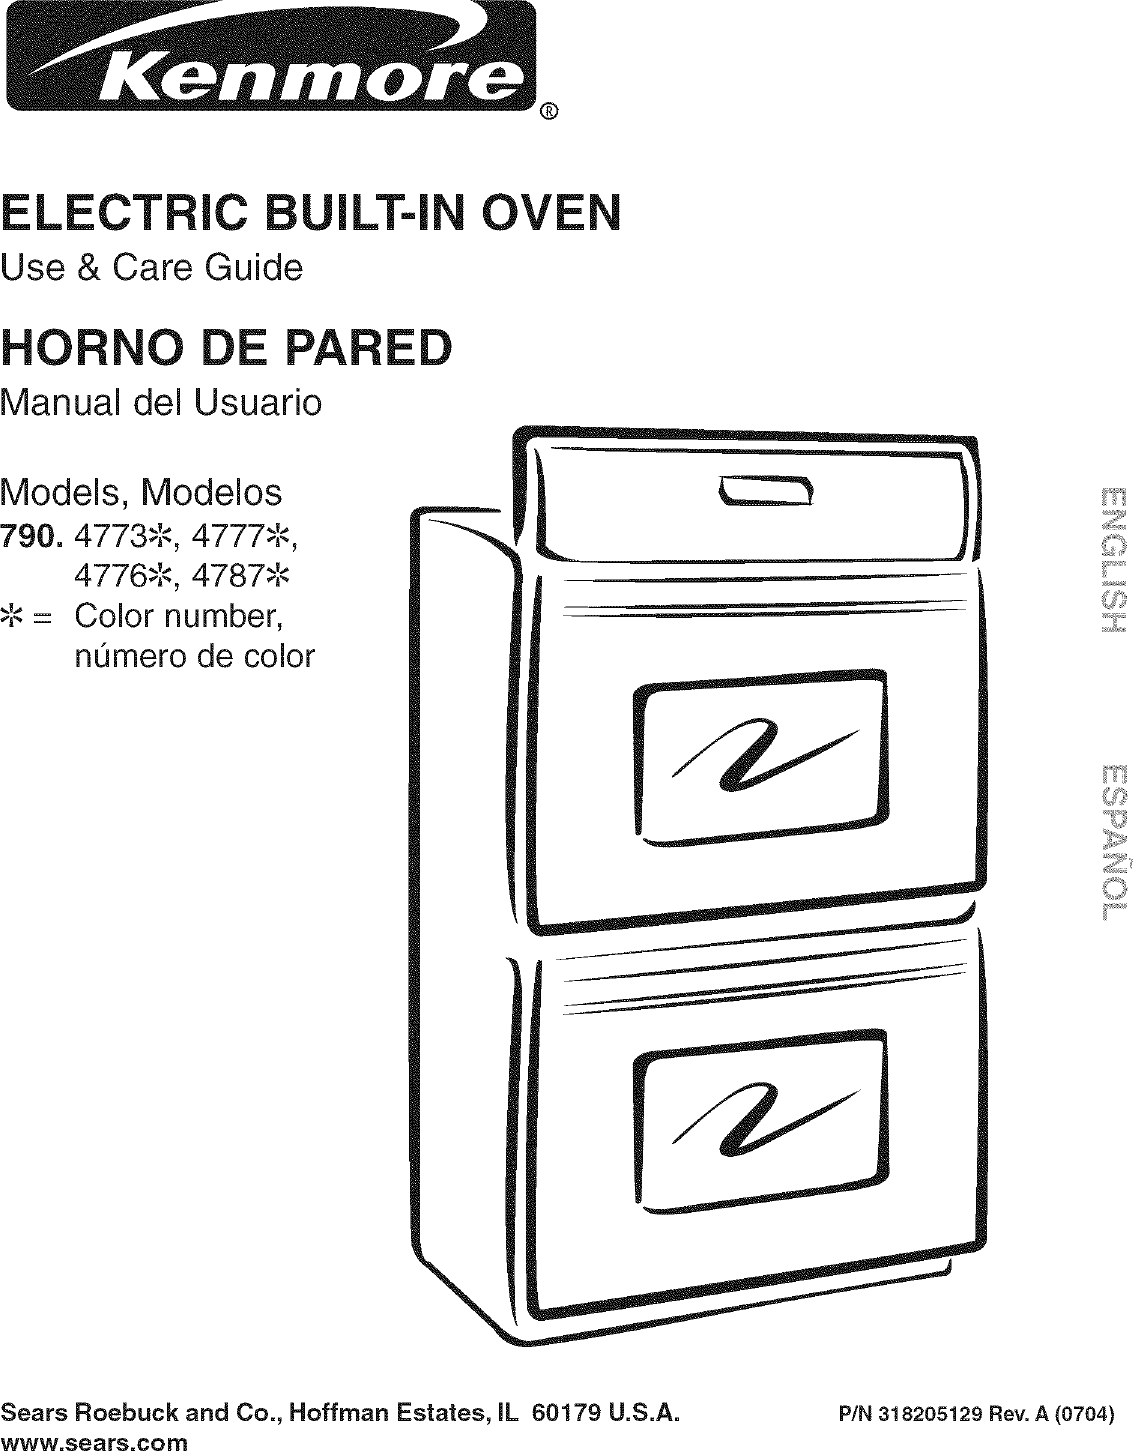 Kenmore 79047733407 User Manual ELECTRIC OVEN Manuals And